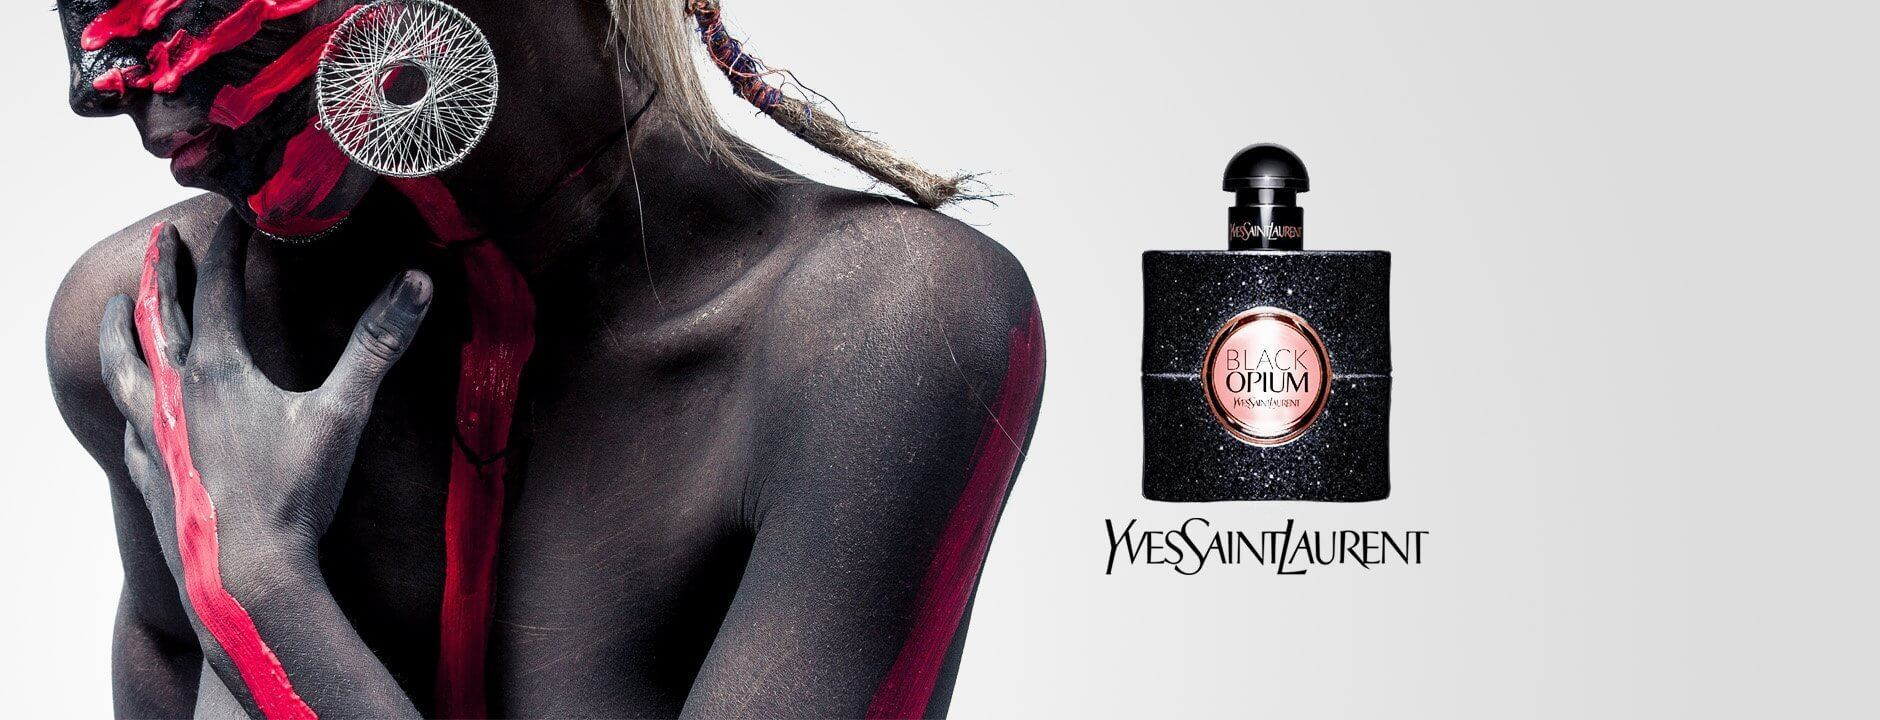 Black Opium by Yves Saint Laurent for Women